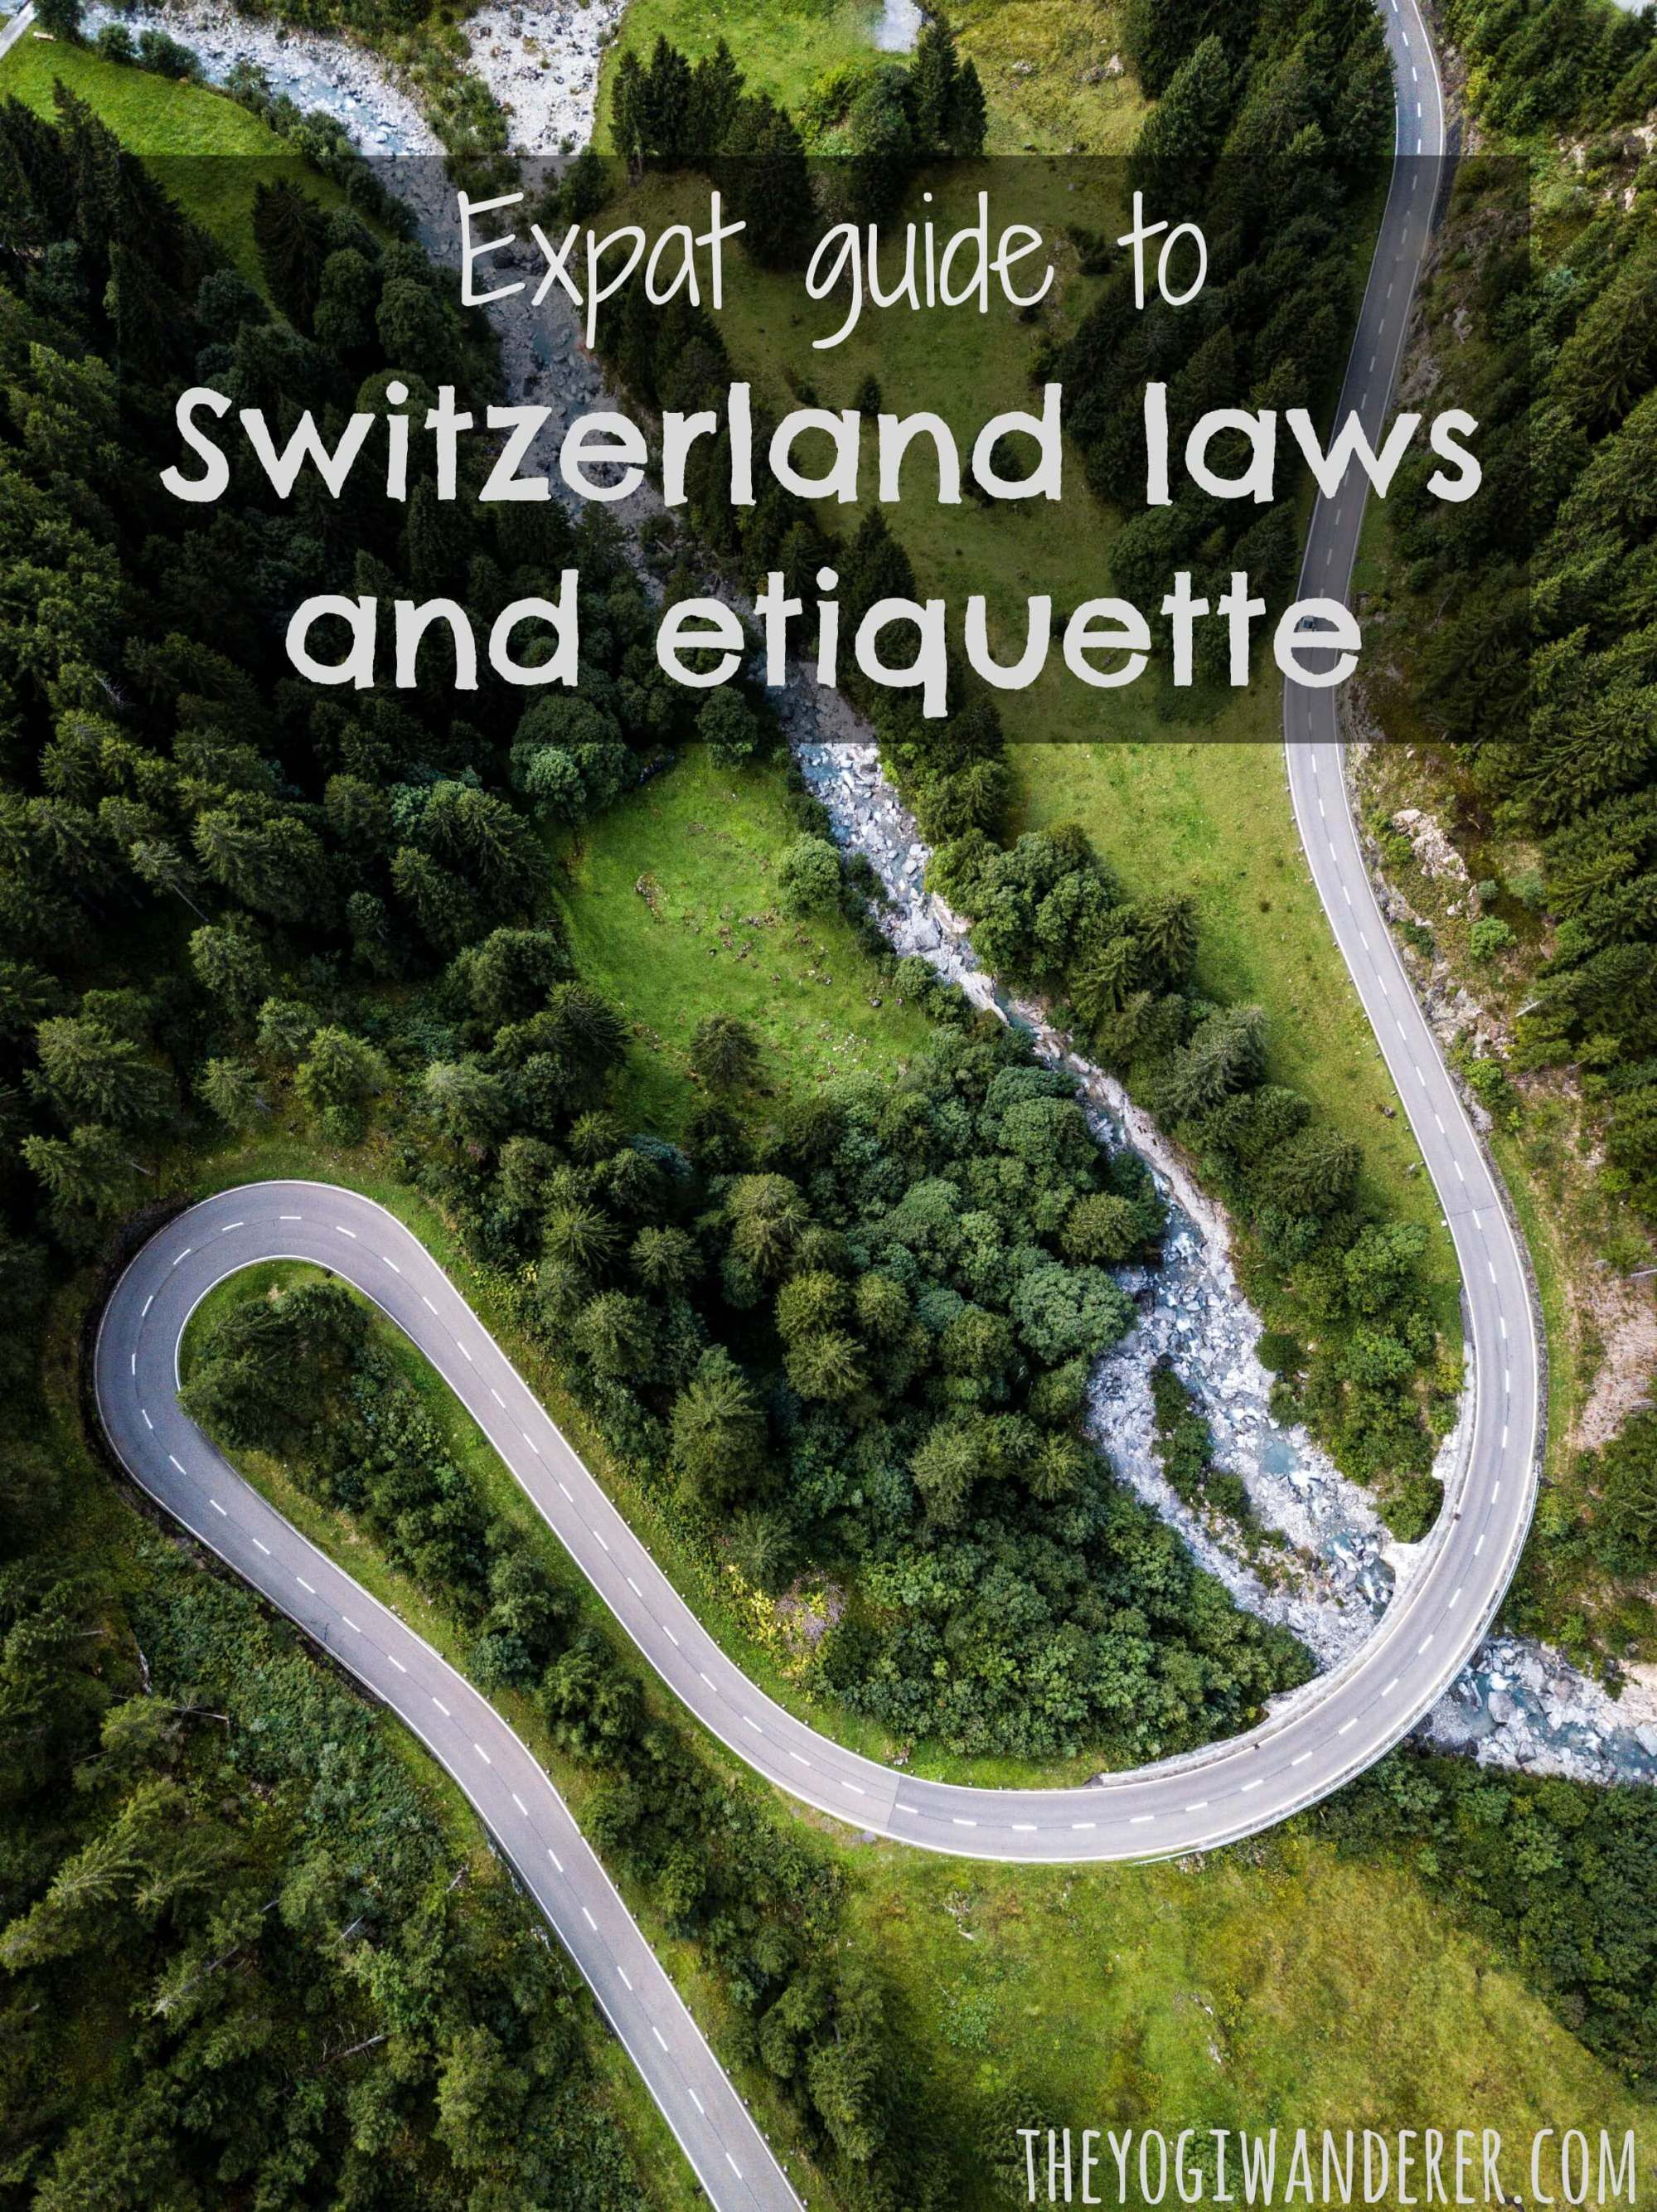 Expat guide to switzerland laws and etiquette with images